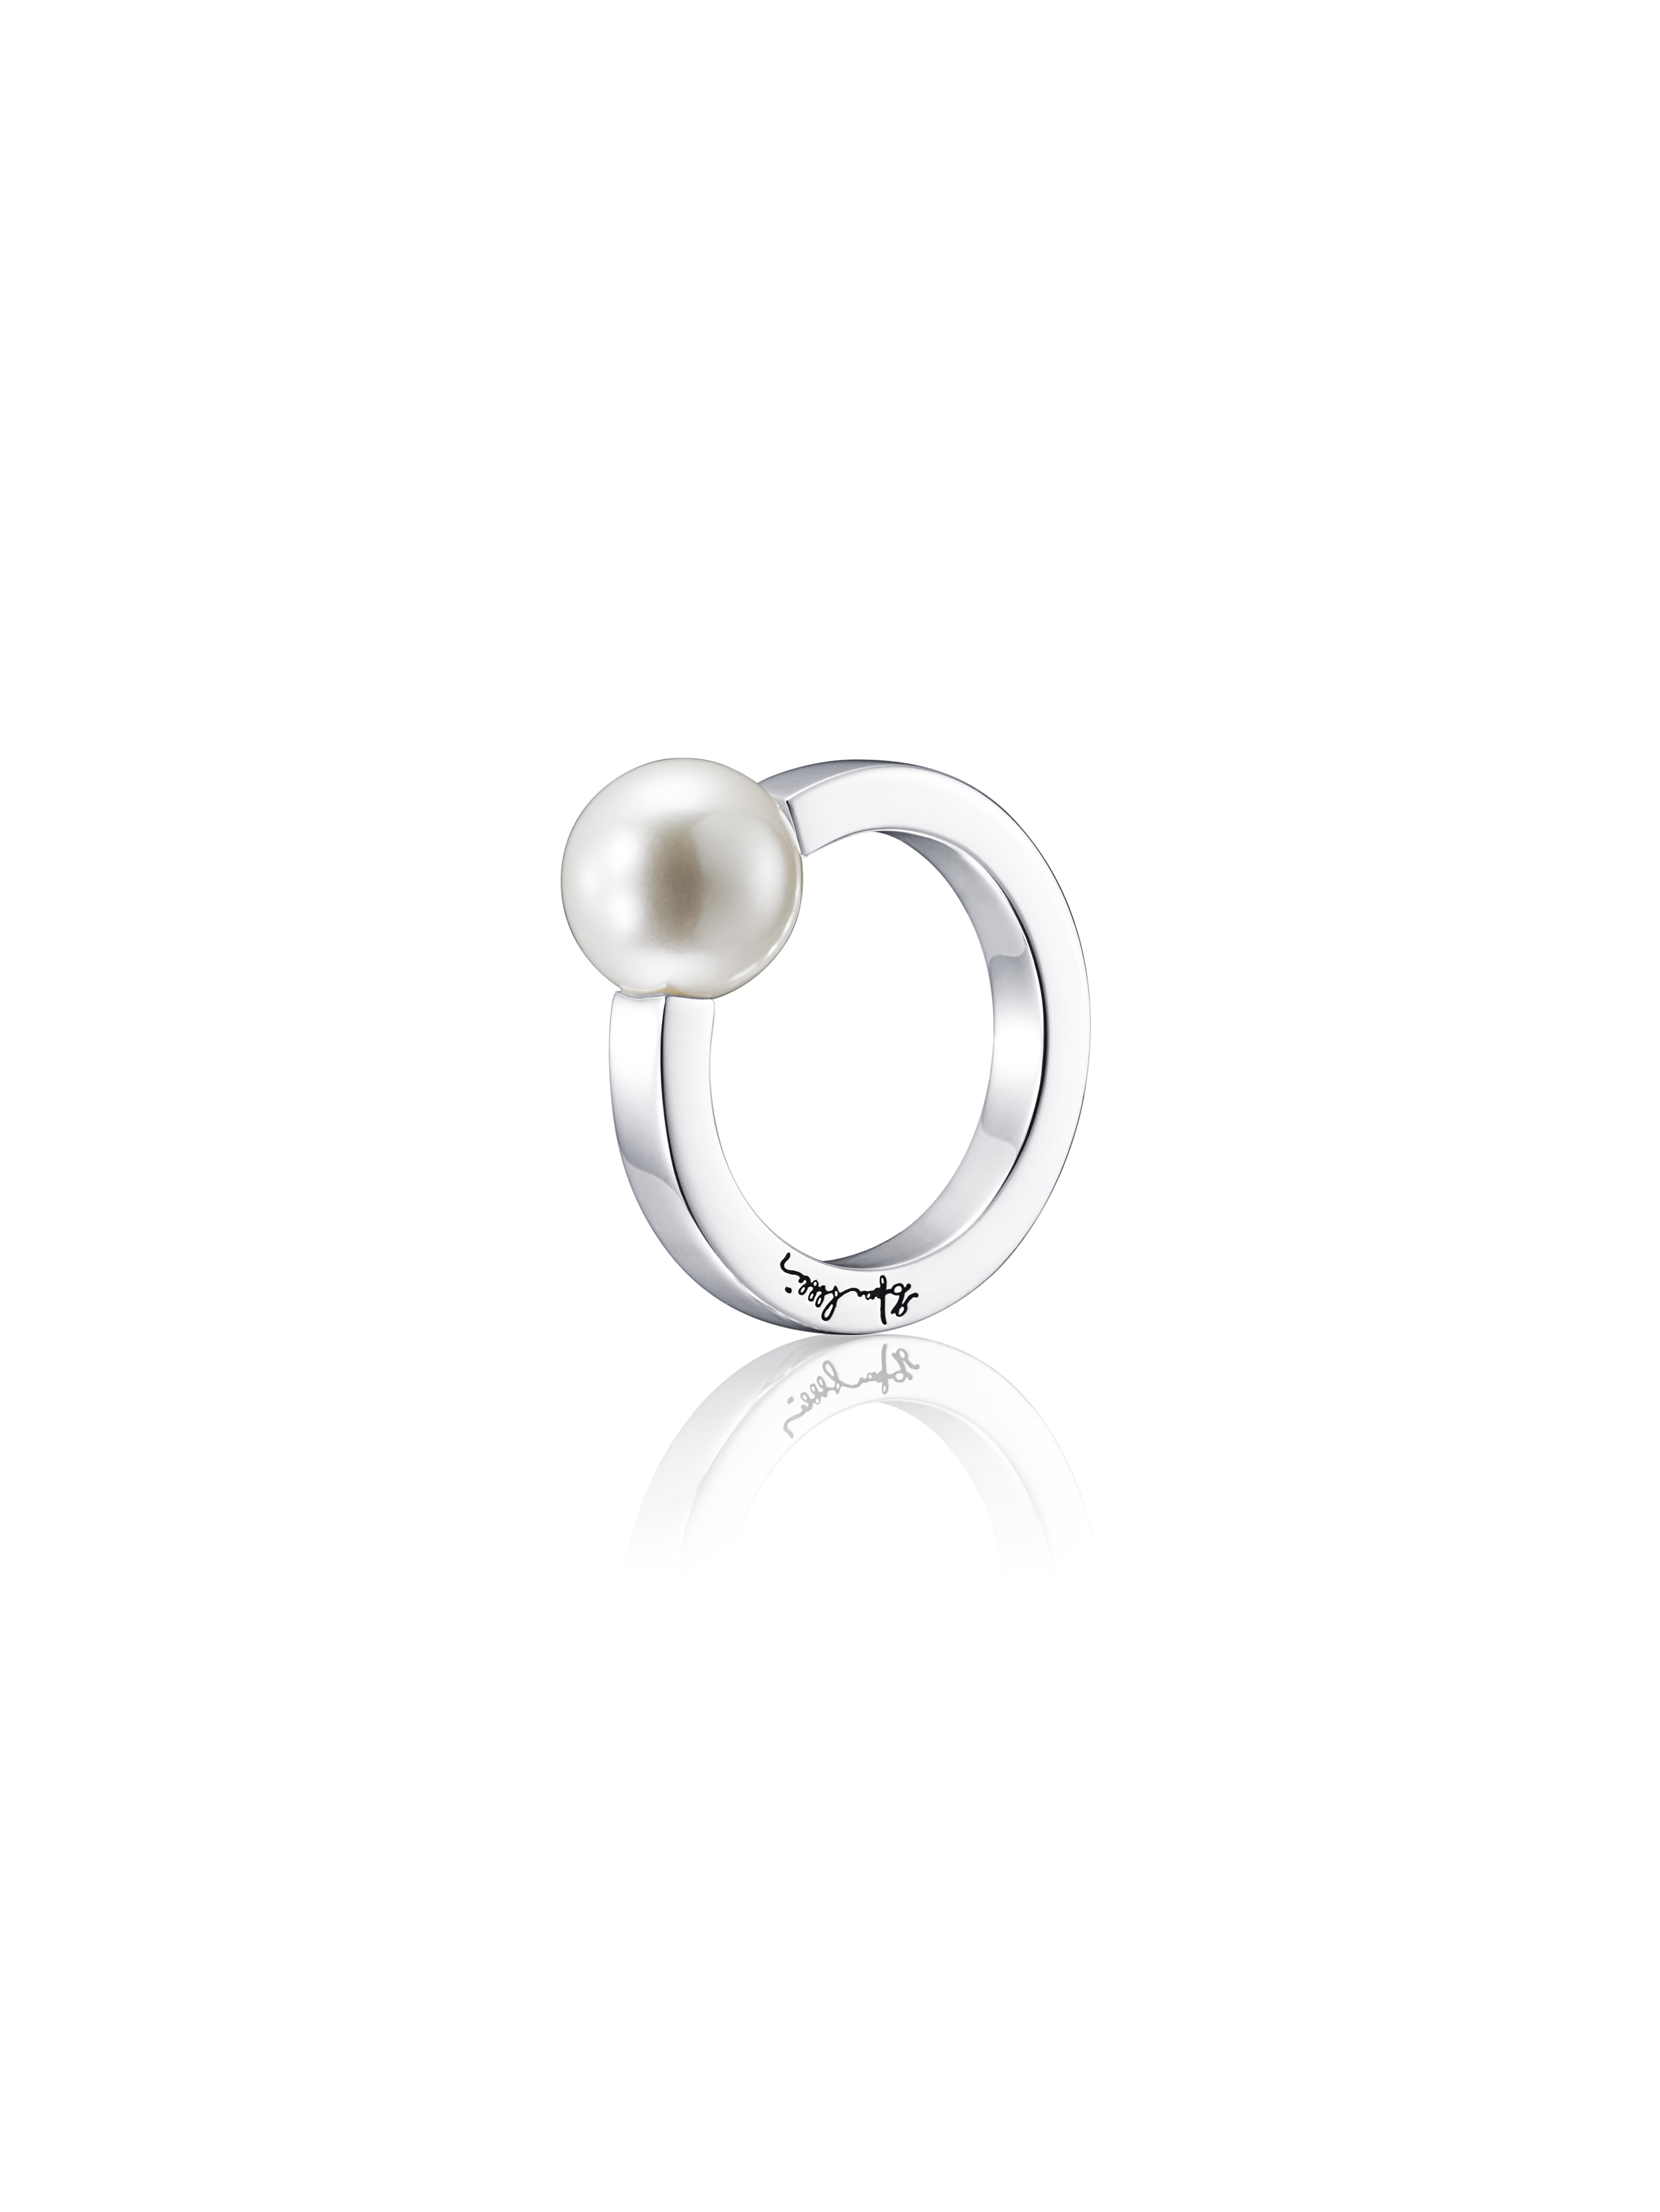 : - 60's pearl ring